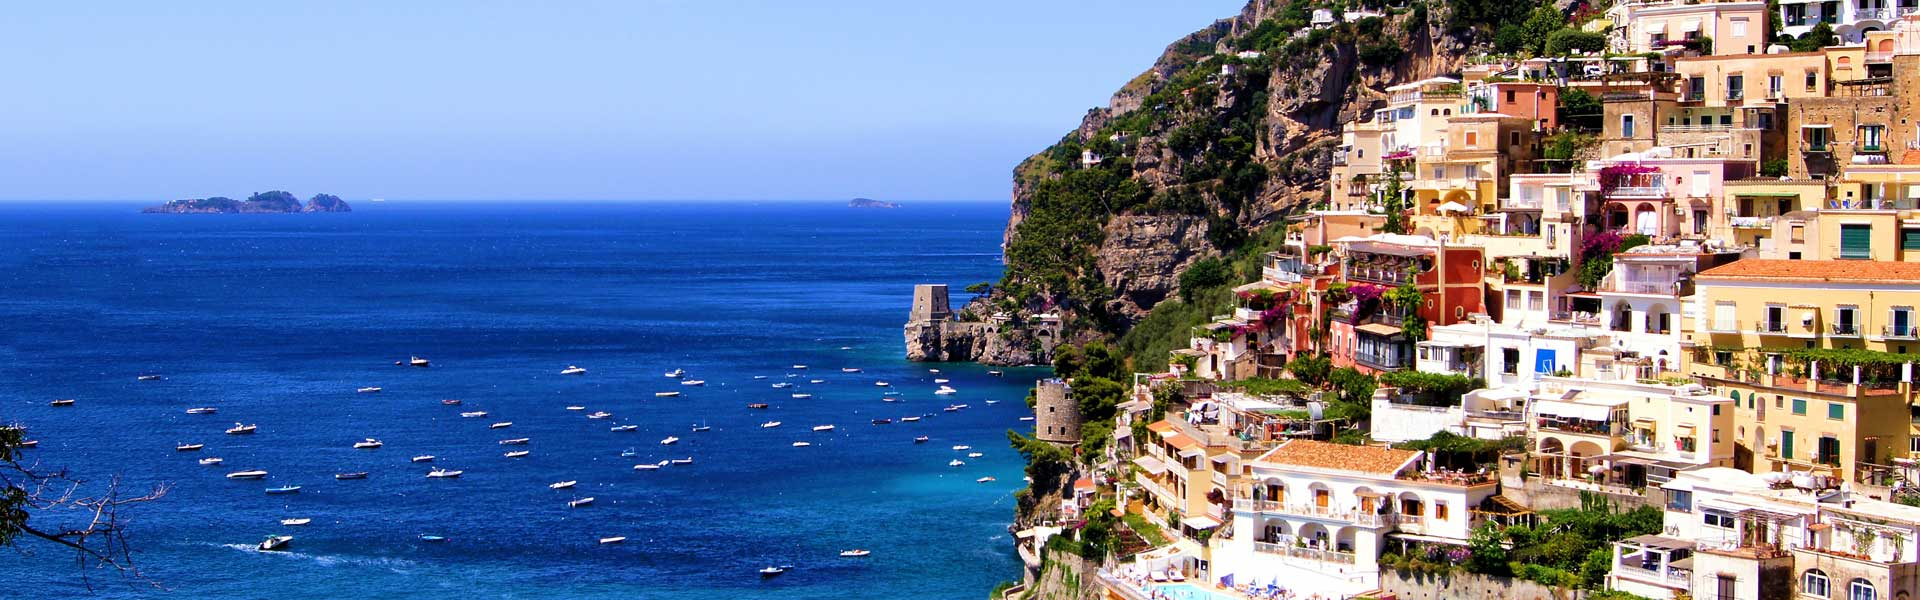 small-group-tours_amalfi-coast-tour